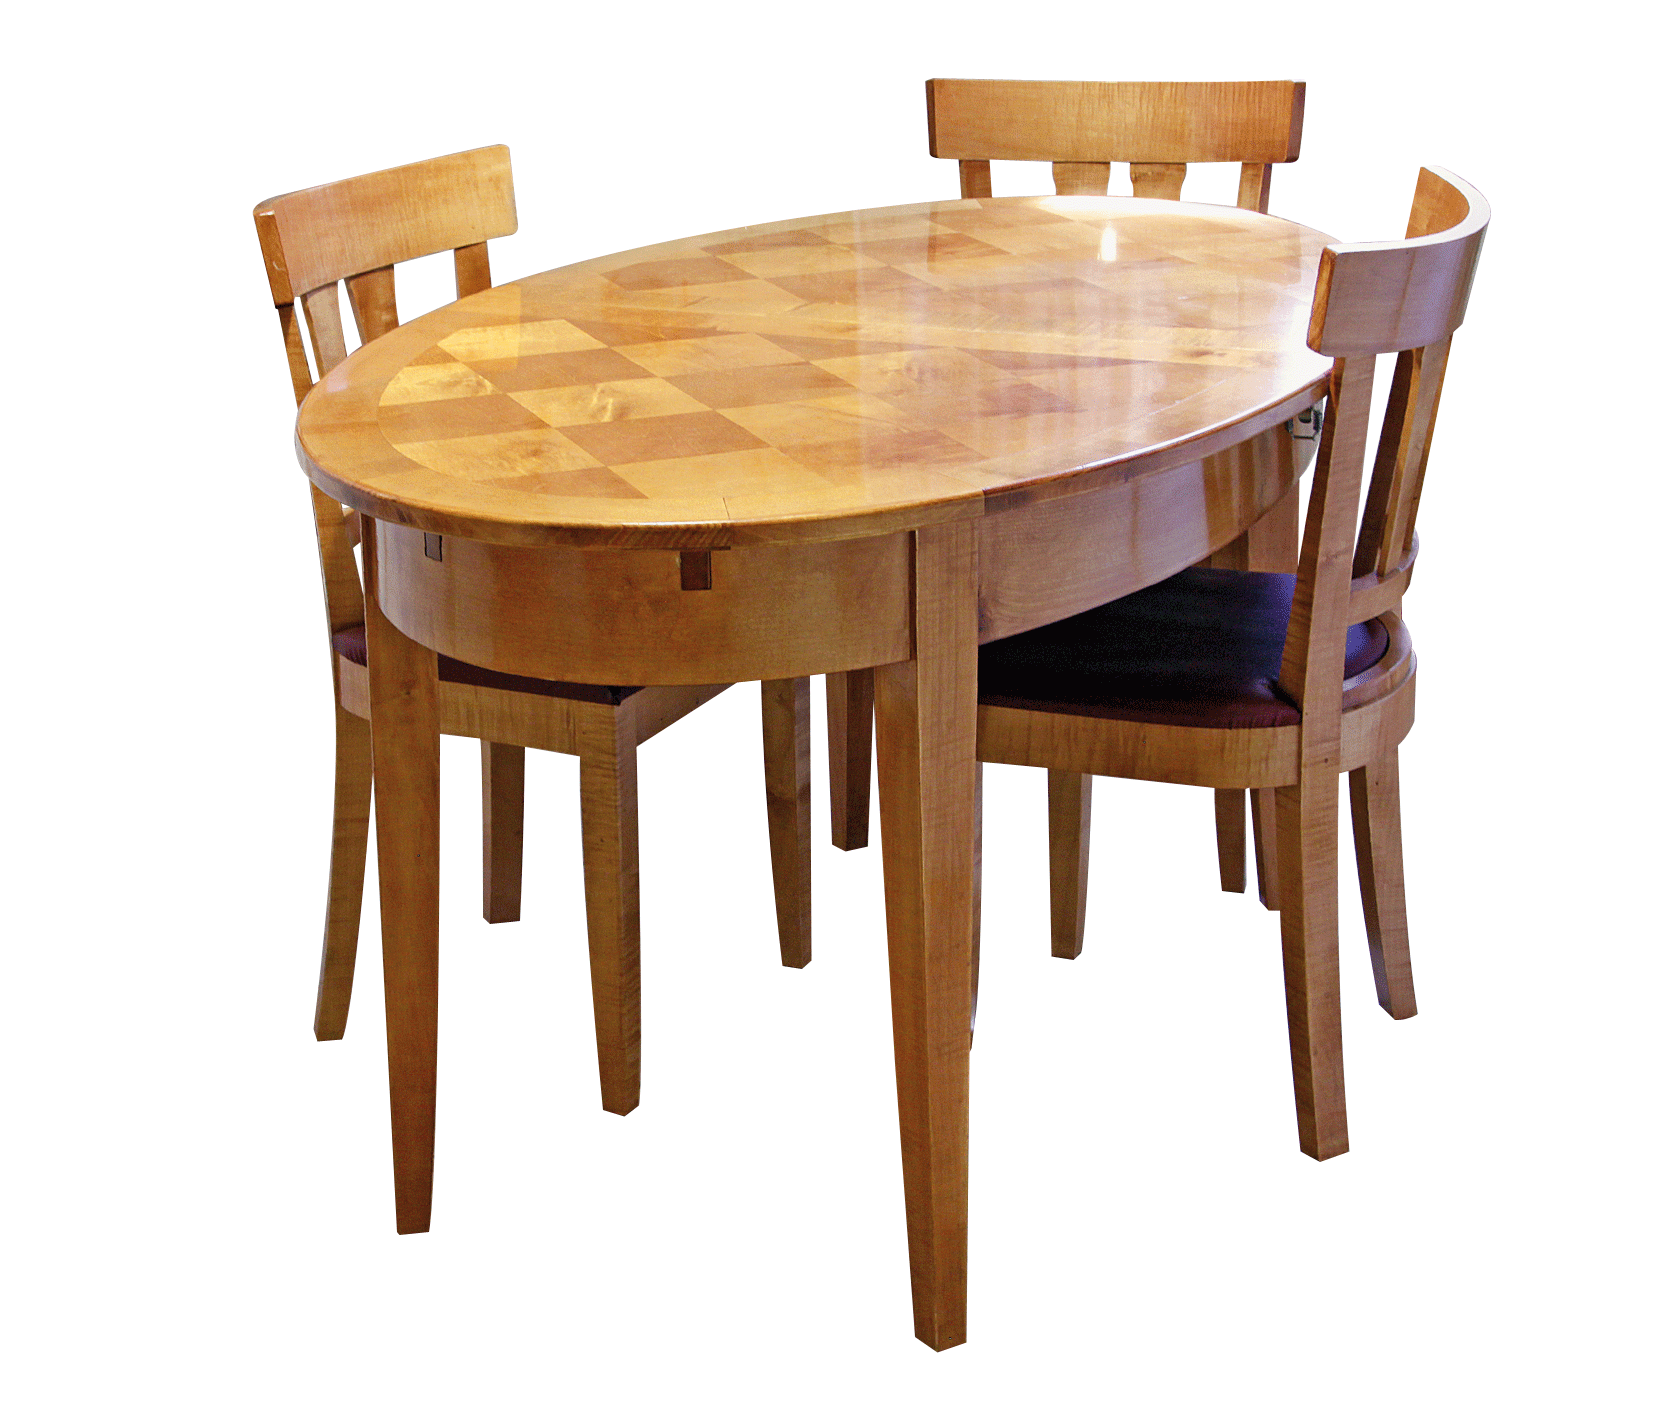 Tables avec rallonges tables plateau verre tables salle for Table salle a manger 3 rallonges